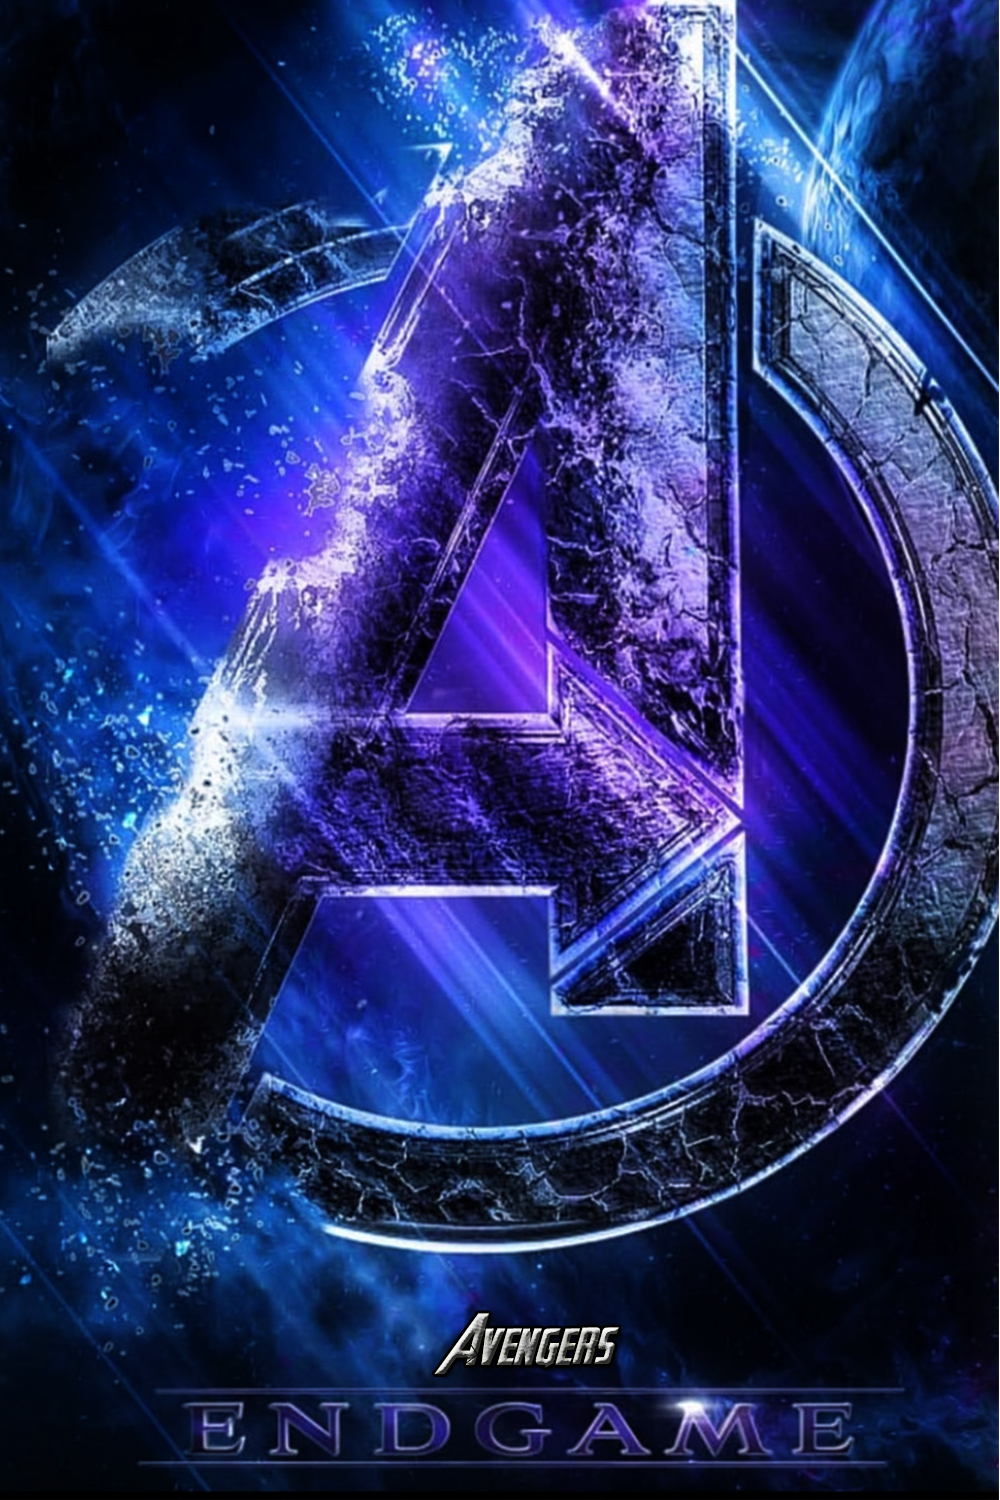 Avengers Wallpaper Iphone 11 Hd Free Download Iphone Wallpapers